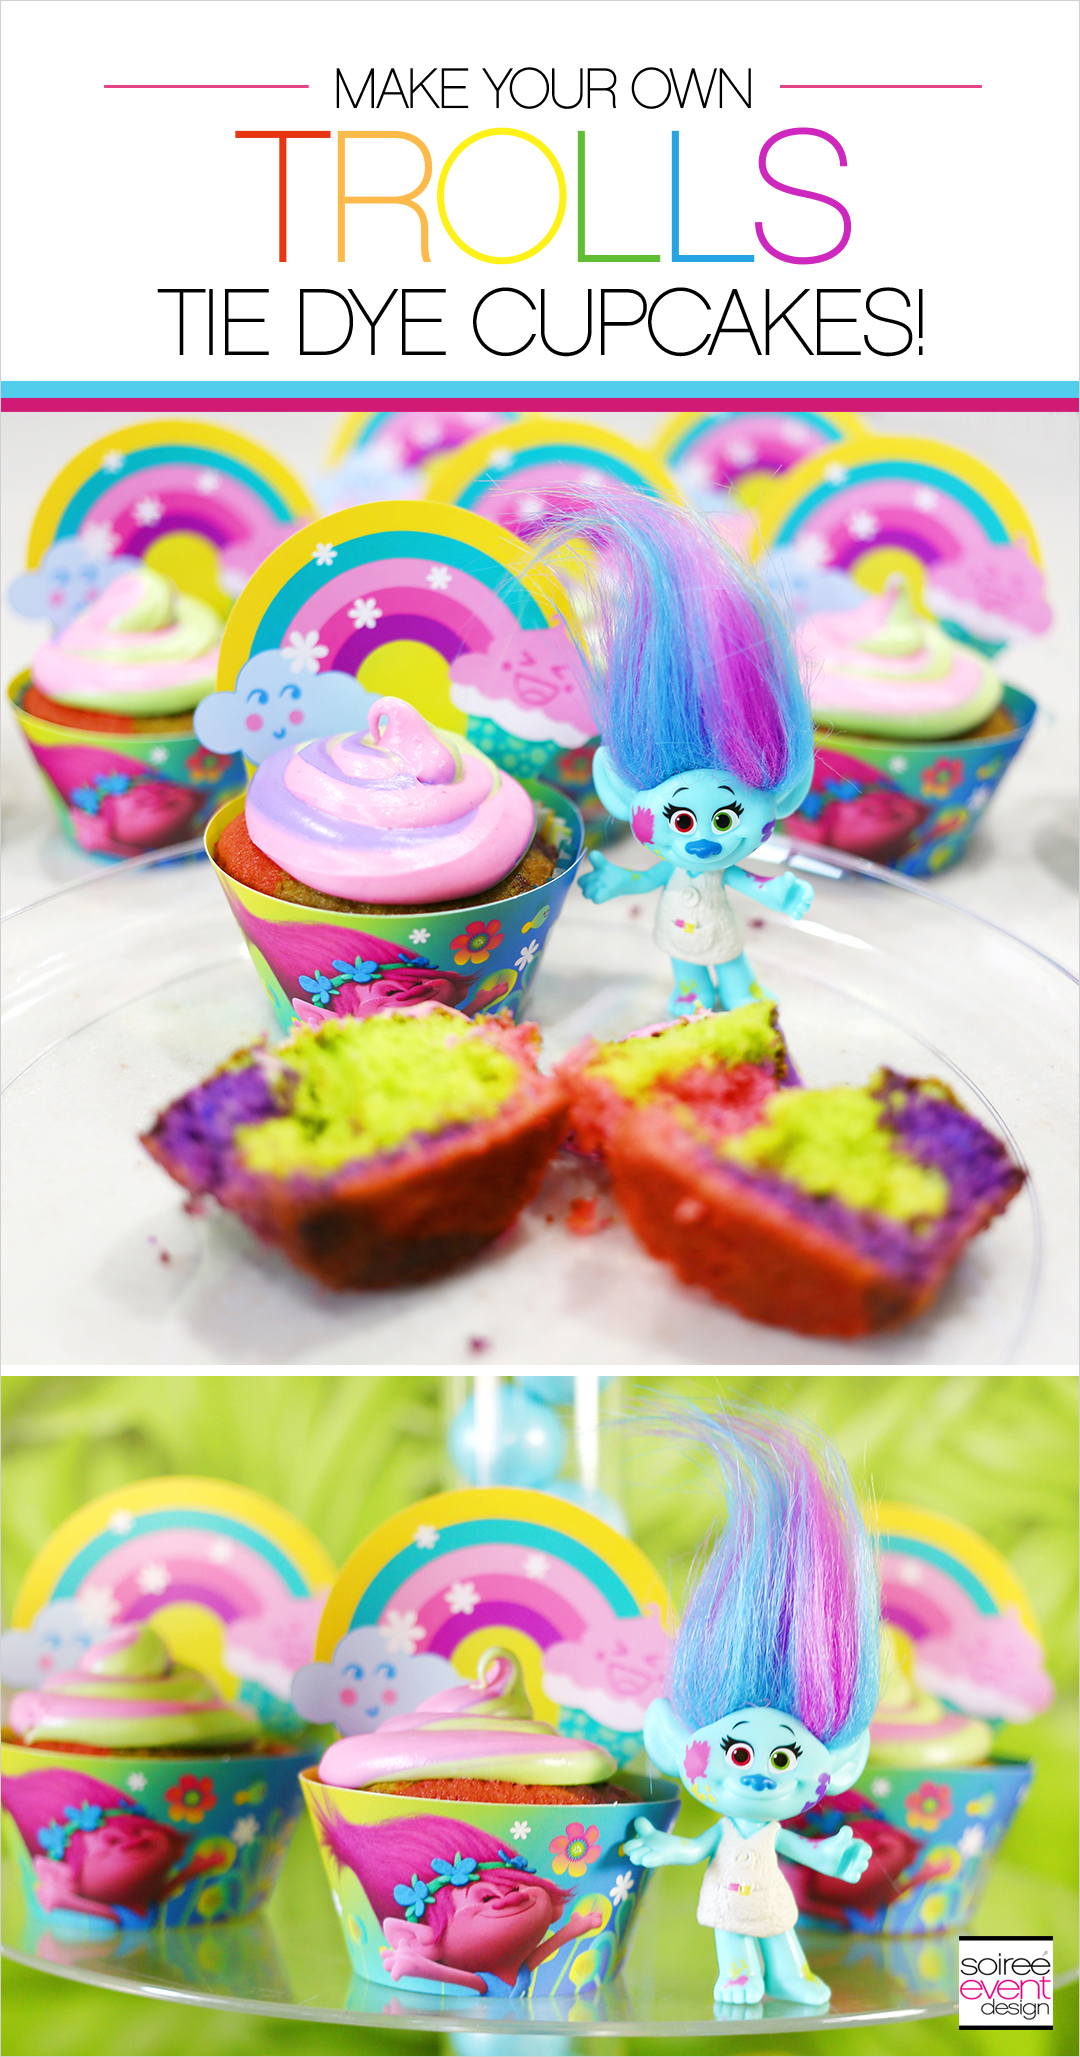 Trolls Party Ideas - Trolls Cupcakes Recipe